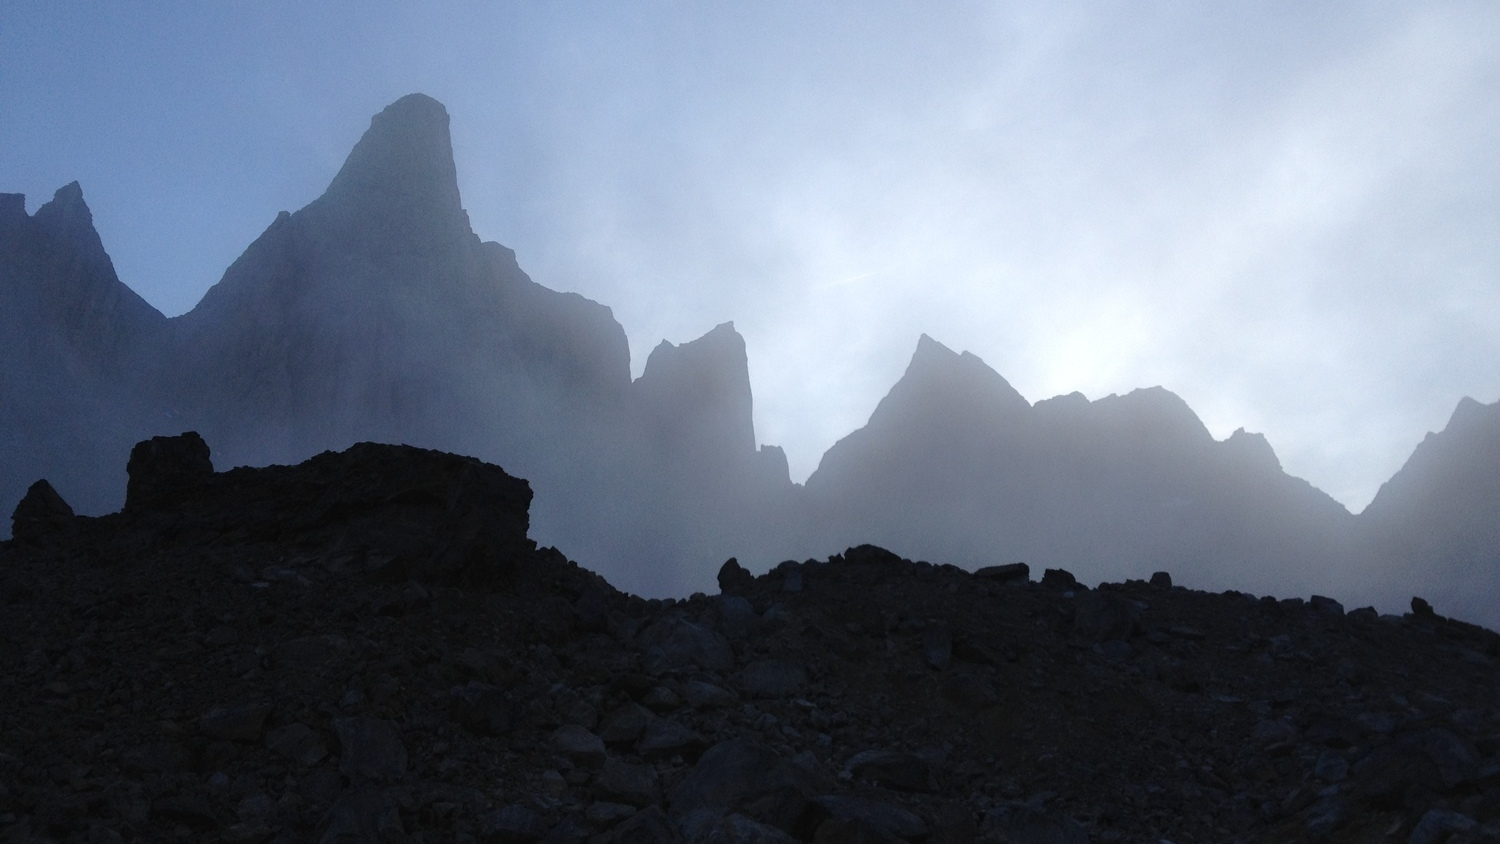 The towers lurking in the cirque